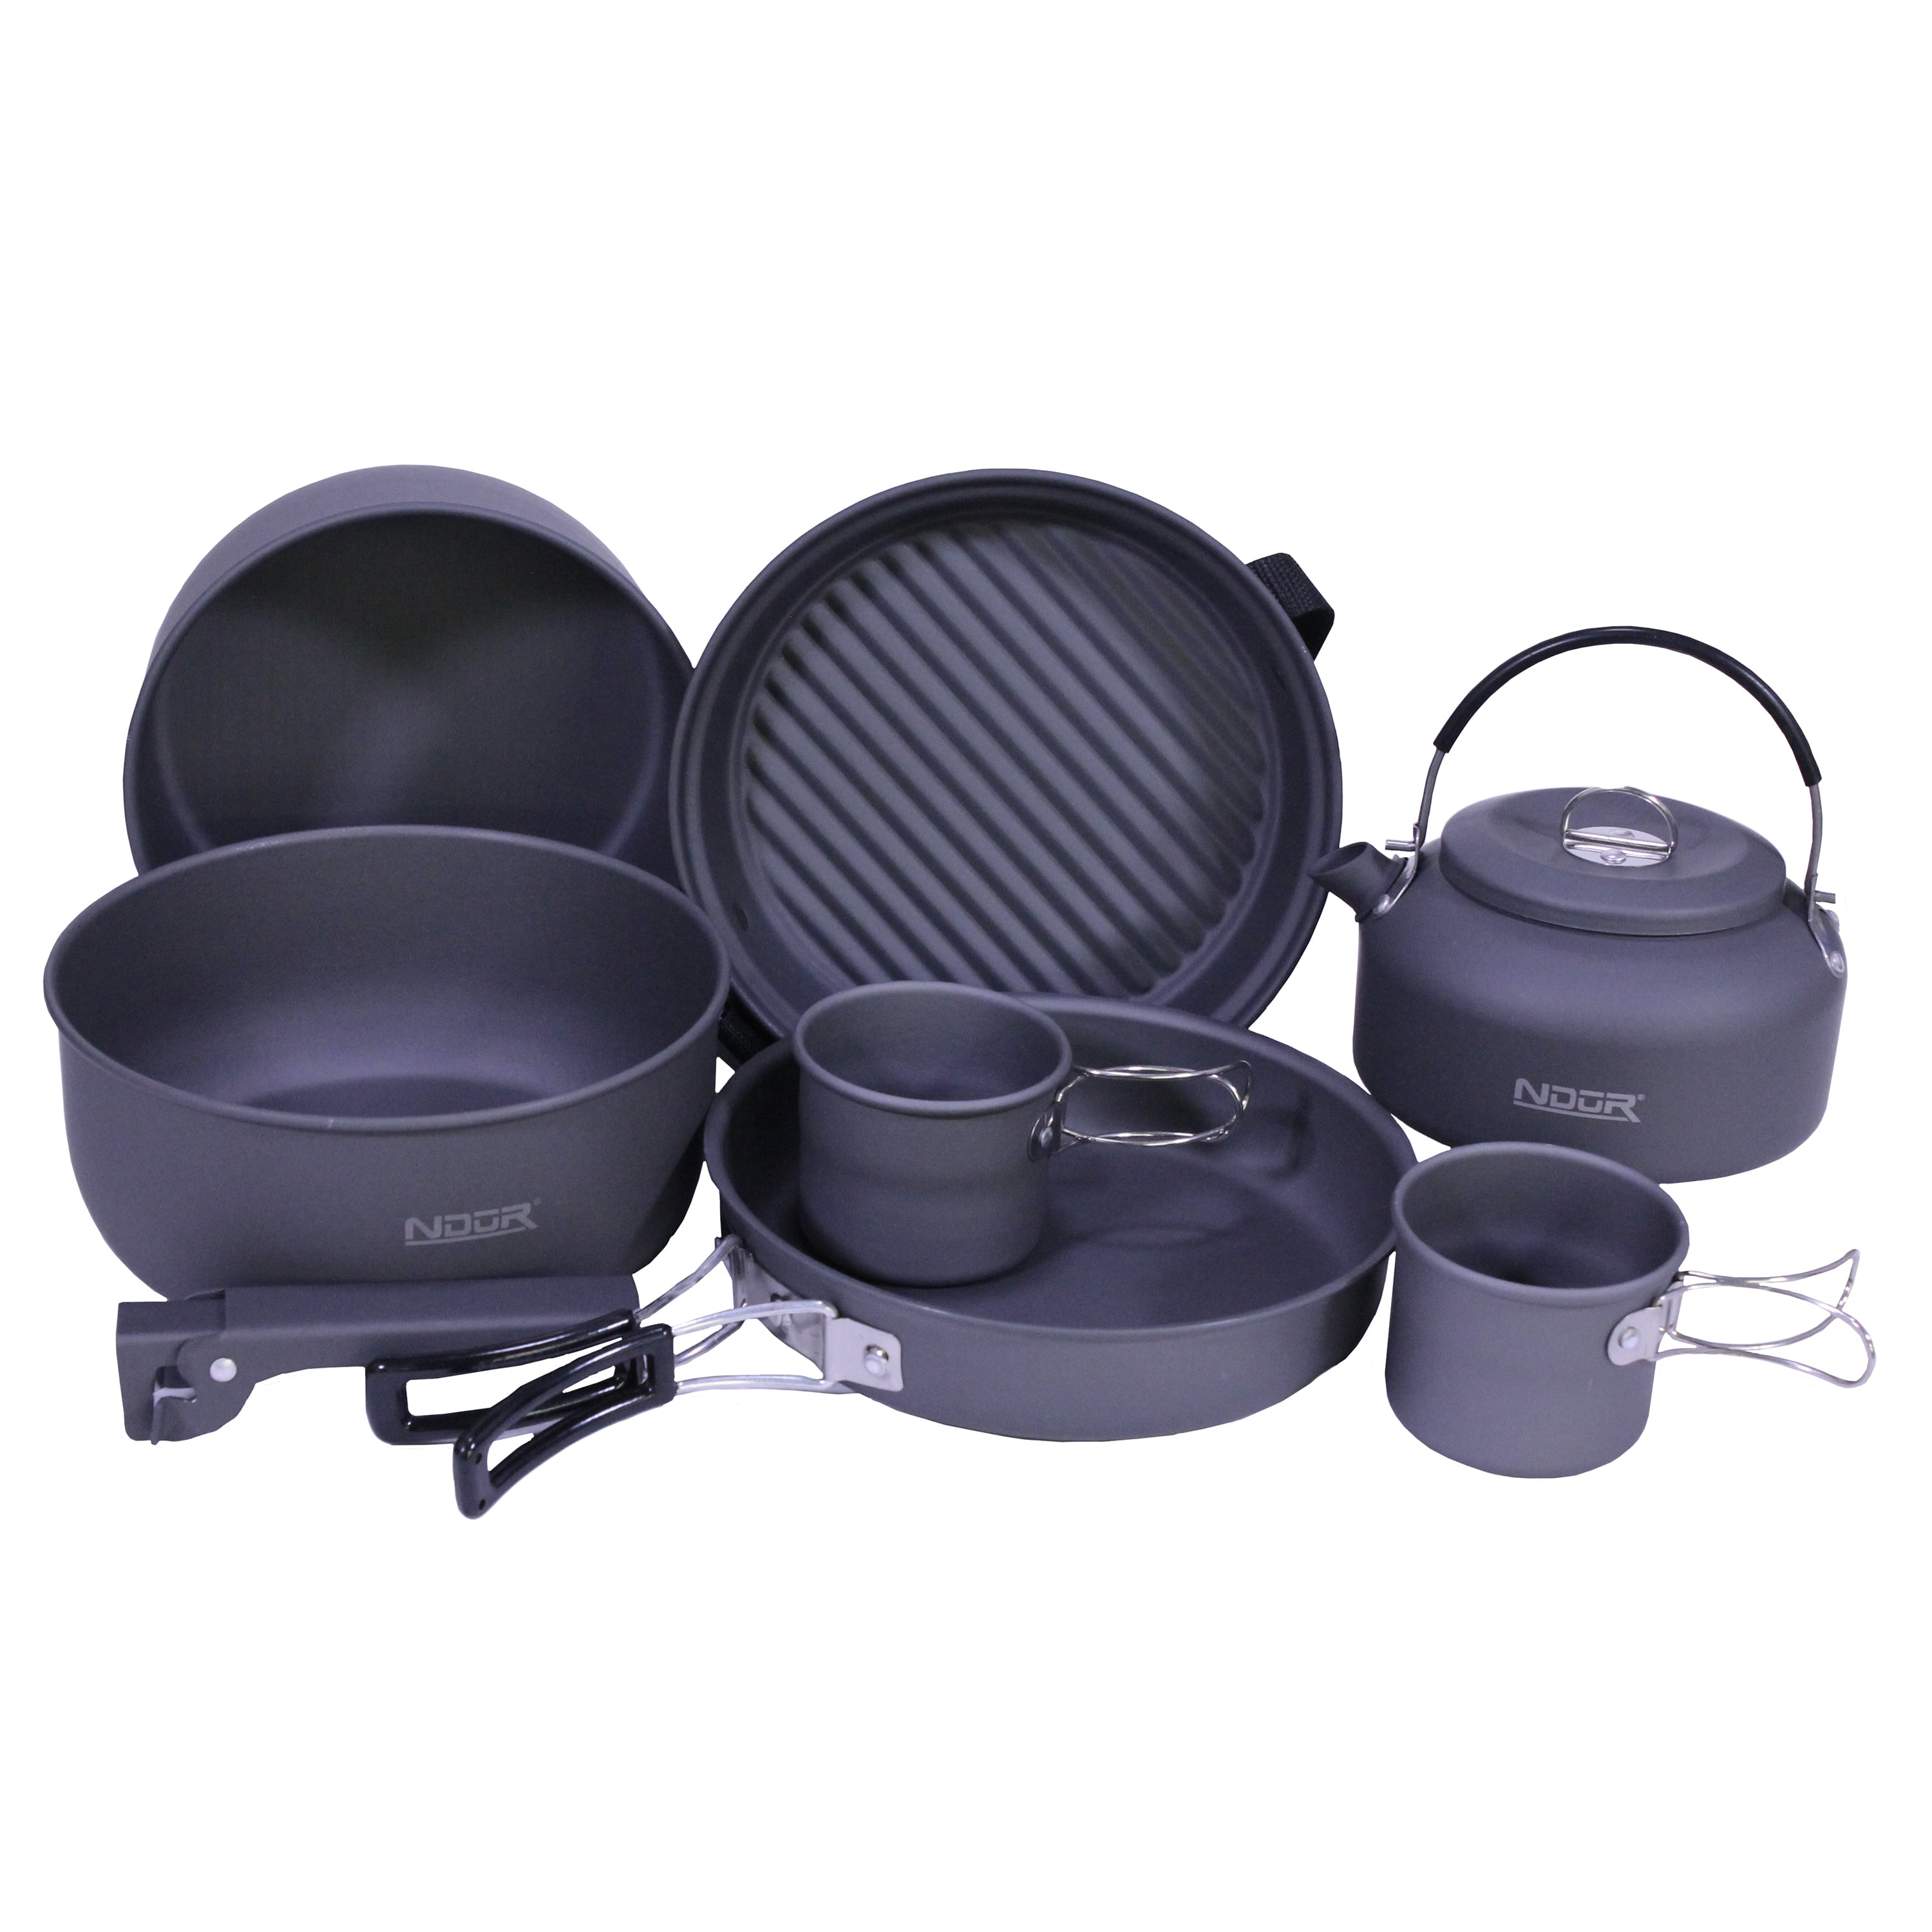 Proforce Equipment Cookware 9 Piece Mess Kit with Kettle by Proforce Equipment